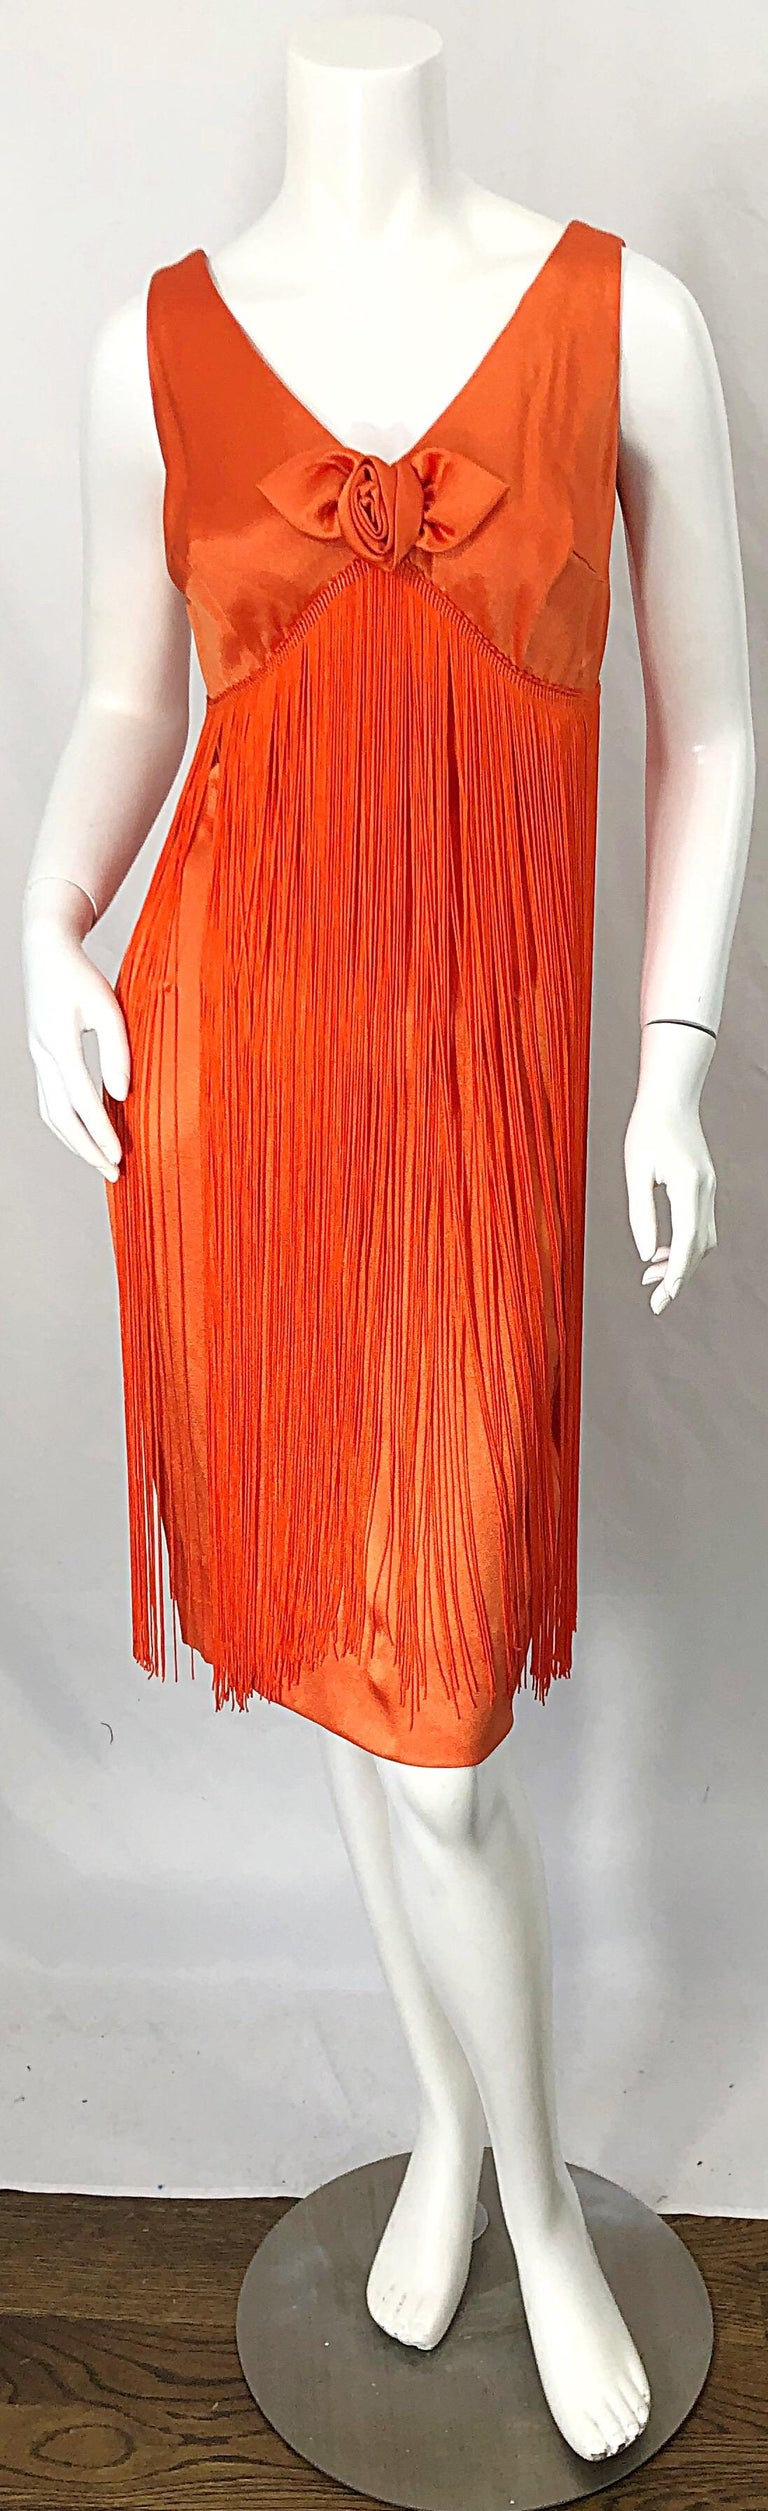 Beautiful vintage 1960s JOSEPH MAGNIN bright neon orange fully fringed flapper dress ! Features the perfect color orange, with hundreds of strands of Fringe throughout the entire dress. Hidden metal zipper up the back with hook-and-eye closure.